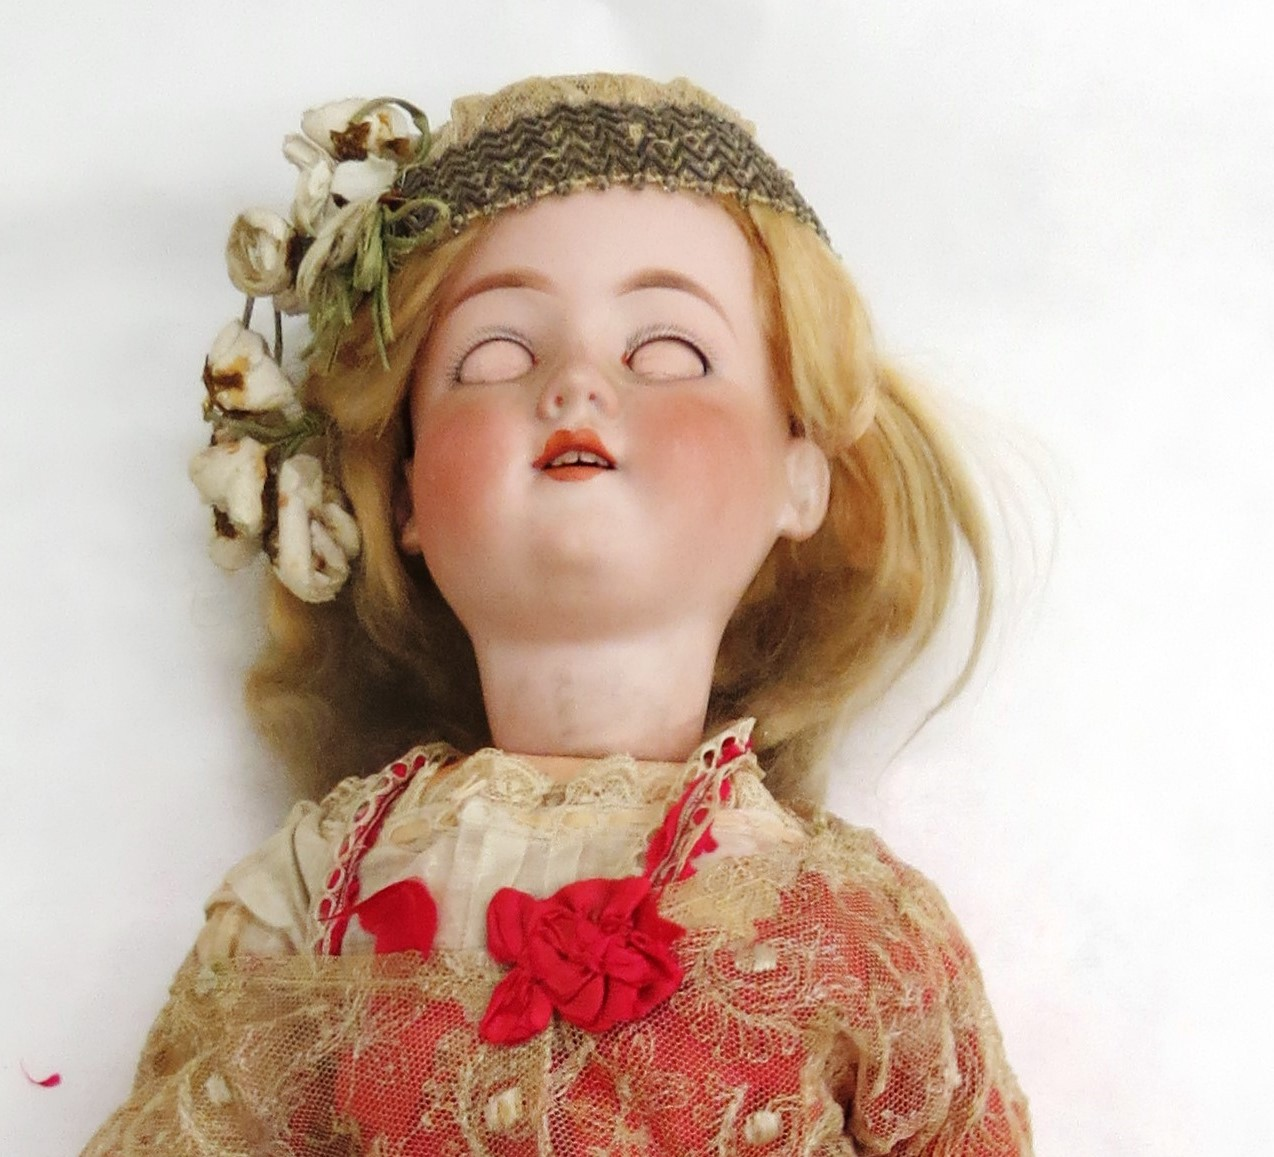 full length picture of a 1915 doll dressed like a flapper. Dressed in red with no eyes and white flowers in the hair